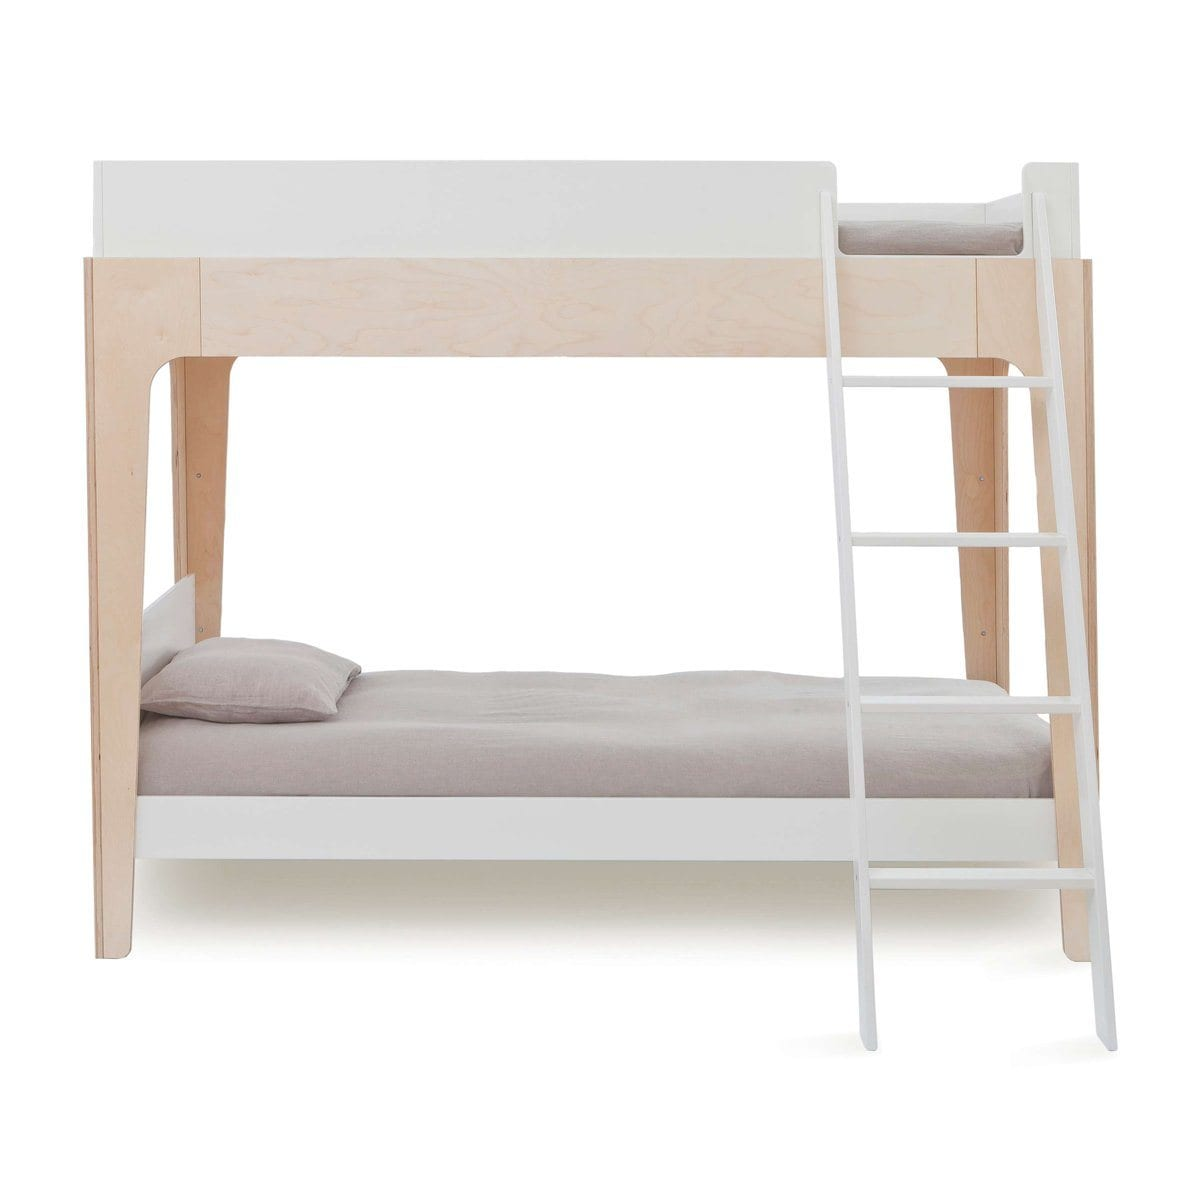 Oeuf Perch Bunk Bed - huggle